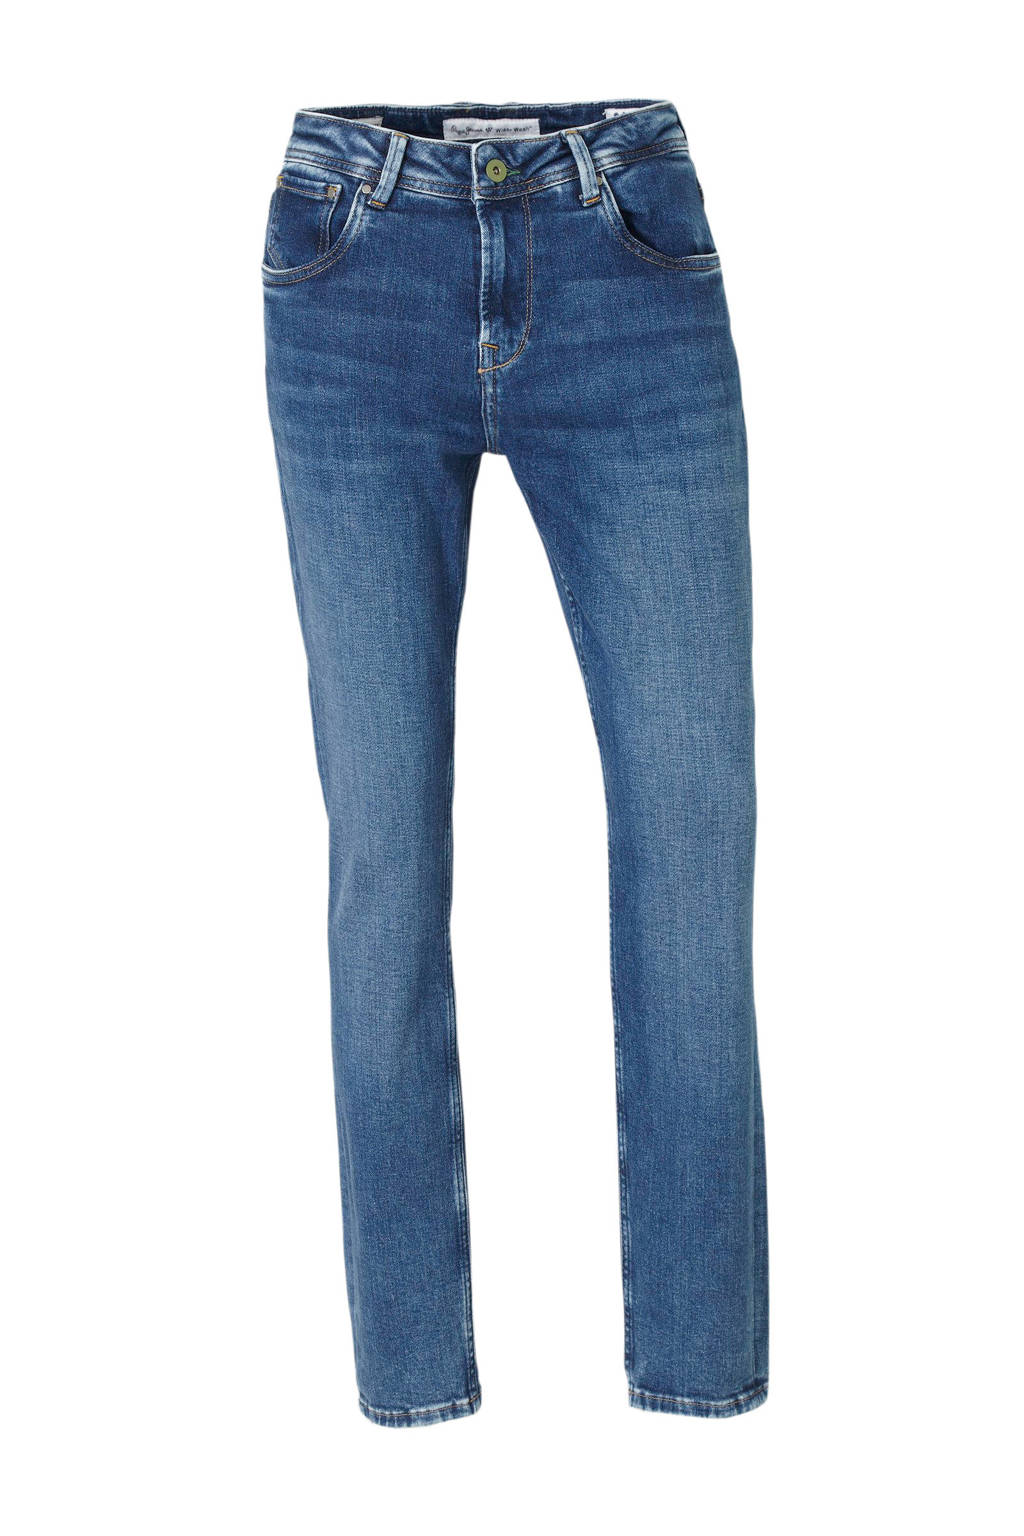 Pepe Jeans mom jeans Violet, Blauw